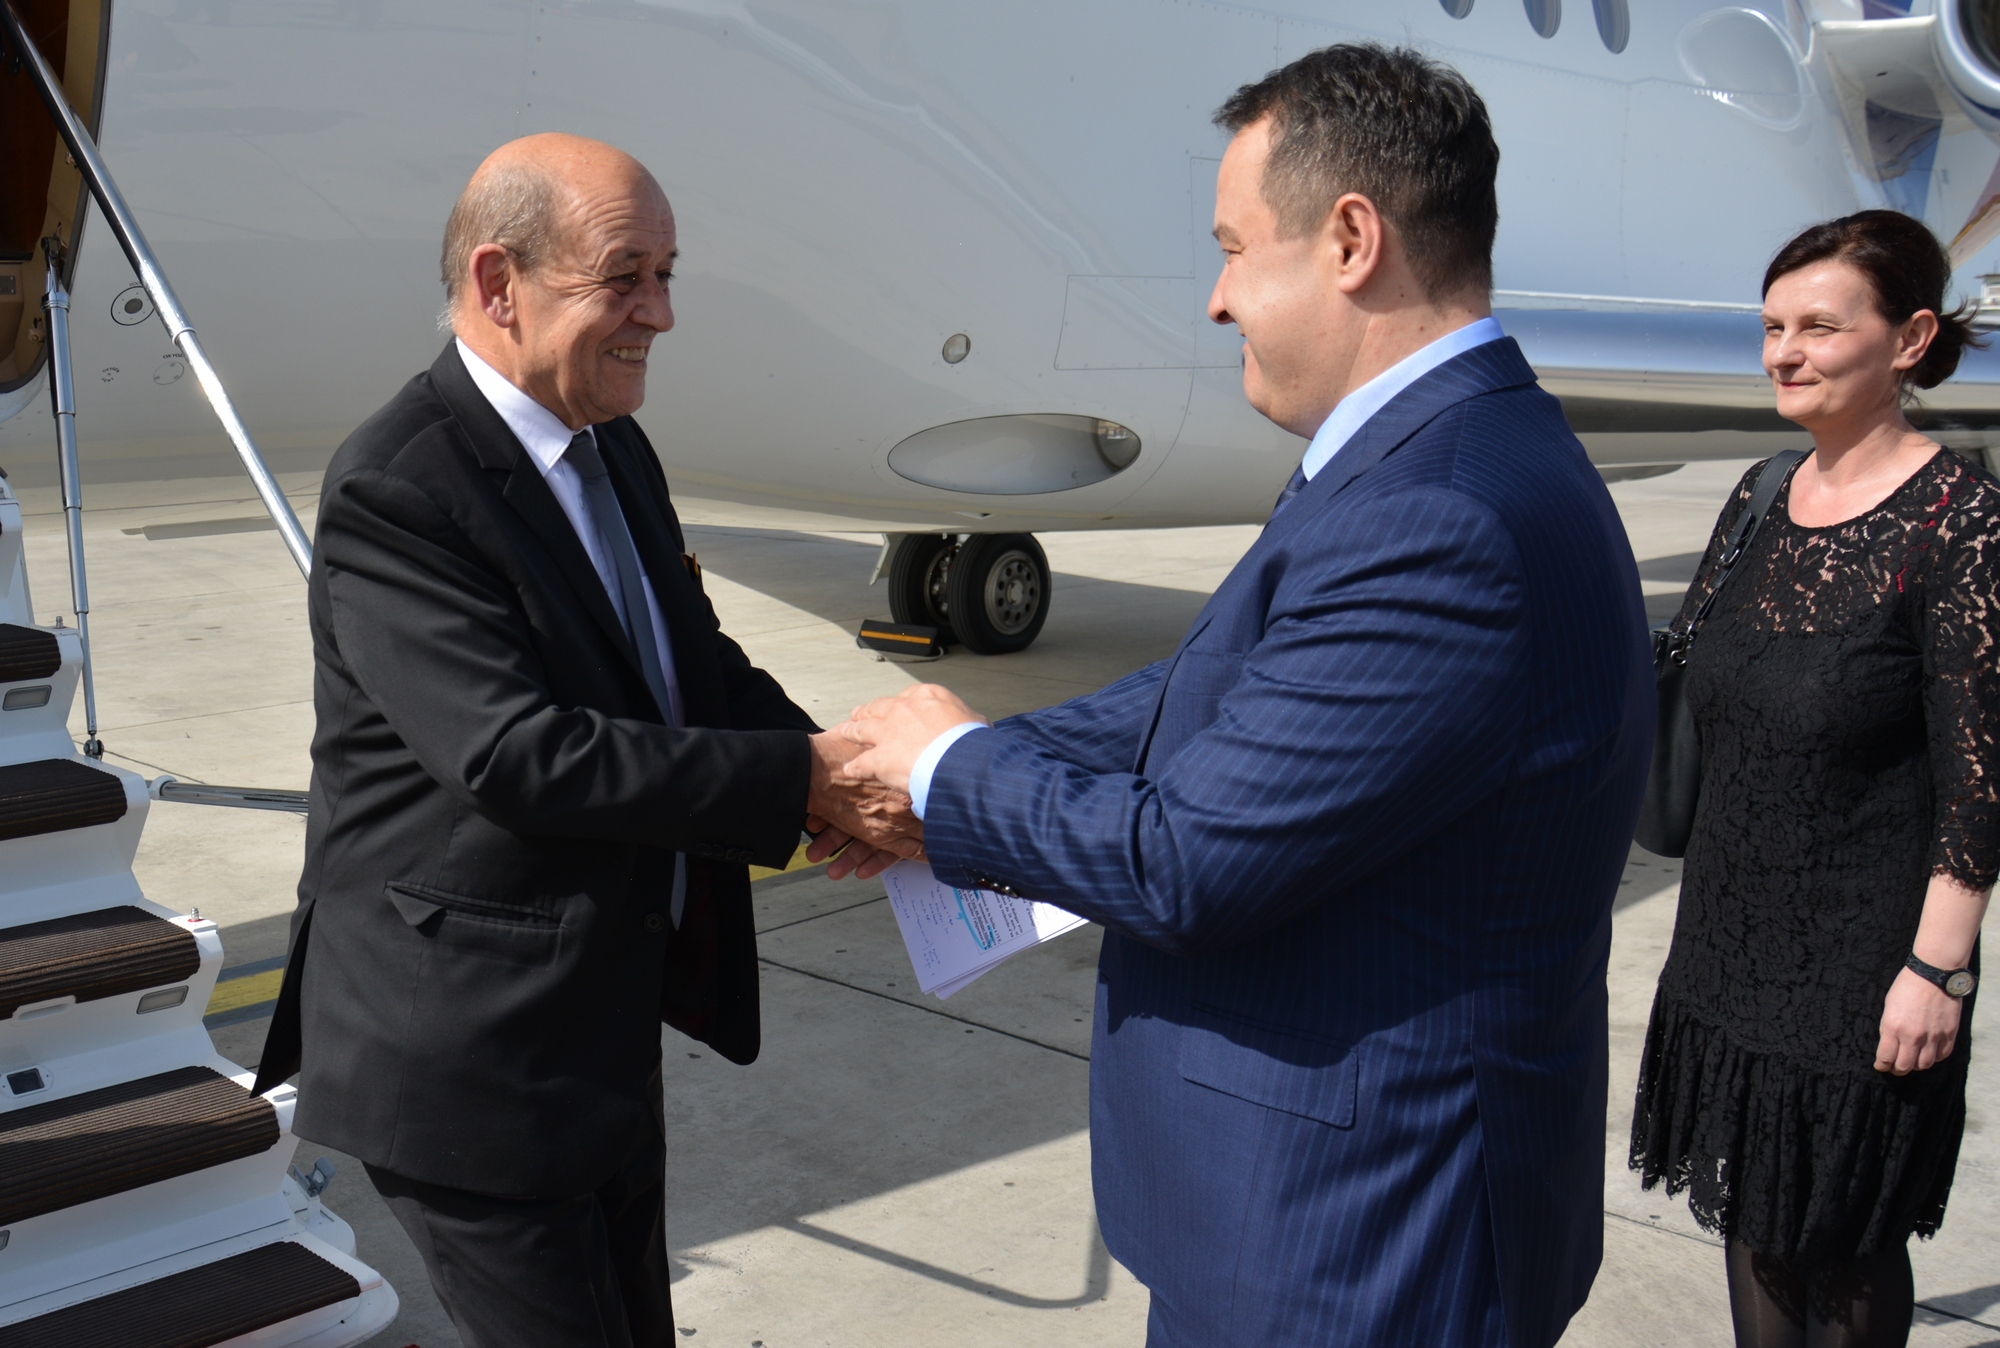 Dacic and Le Drian